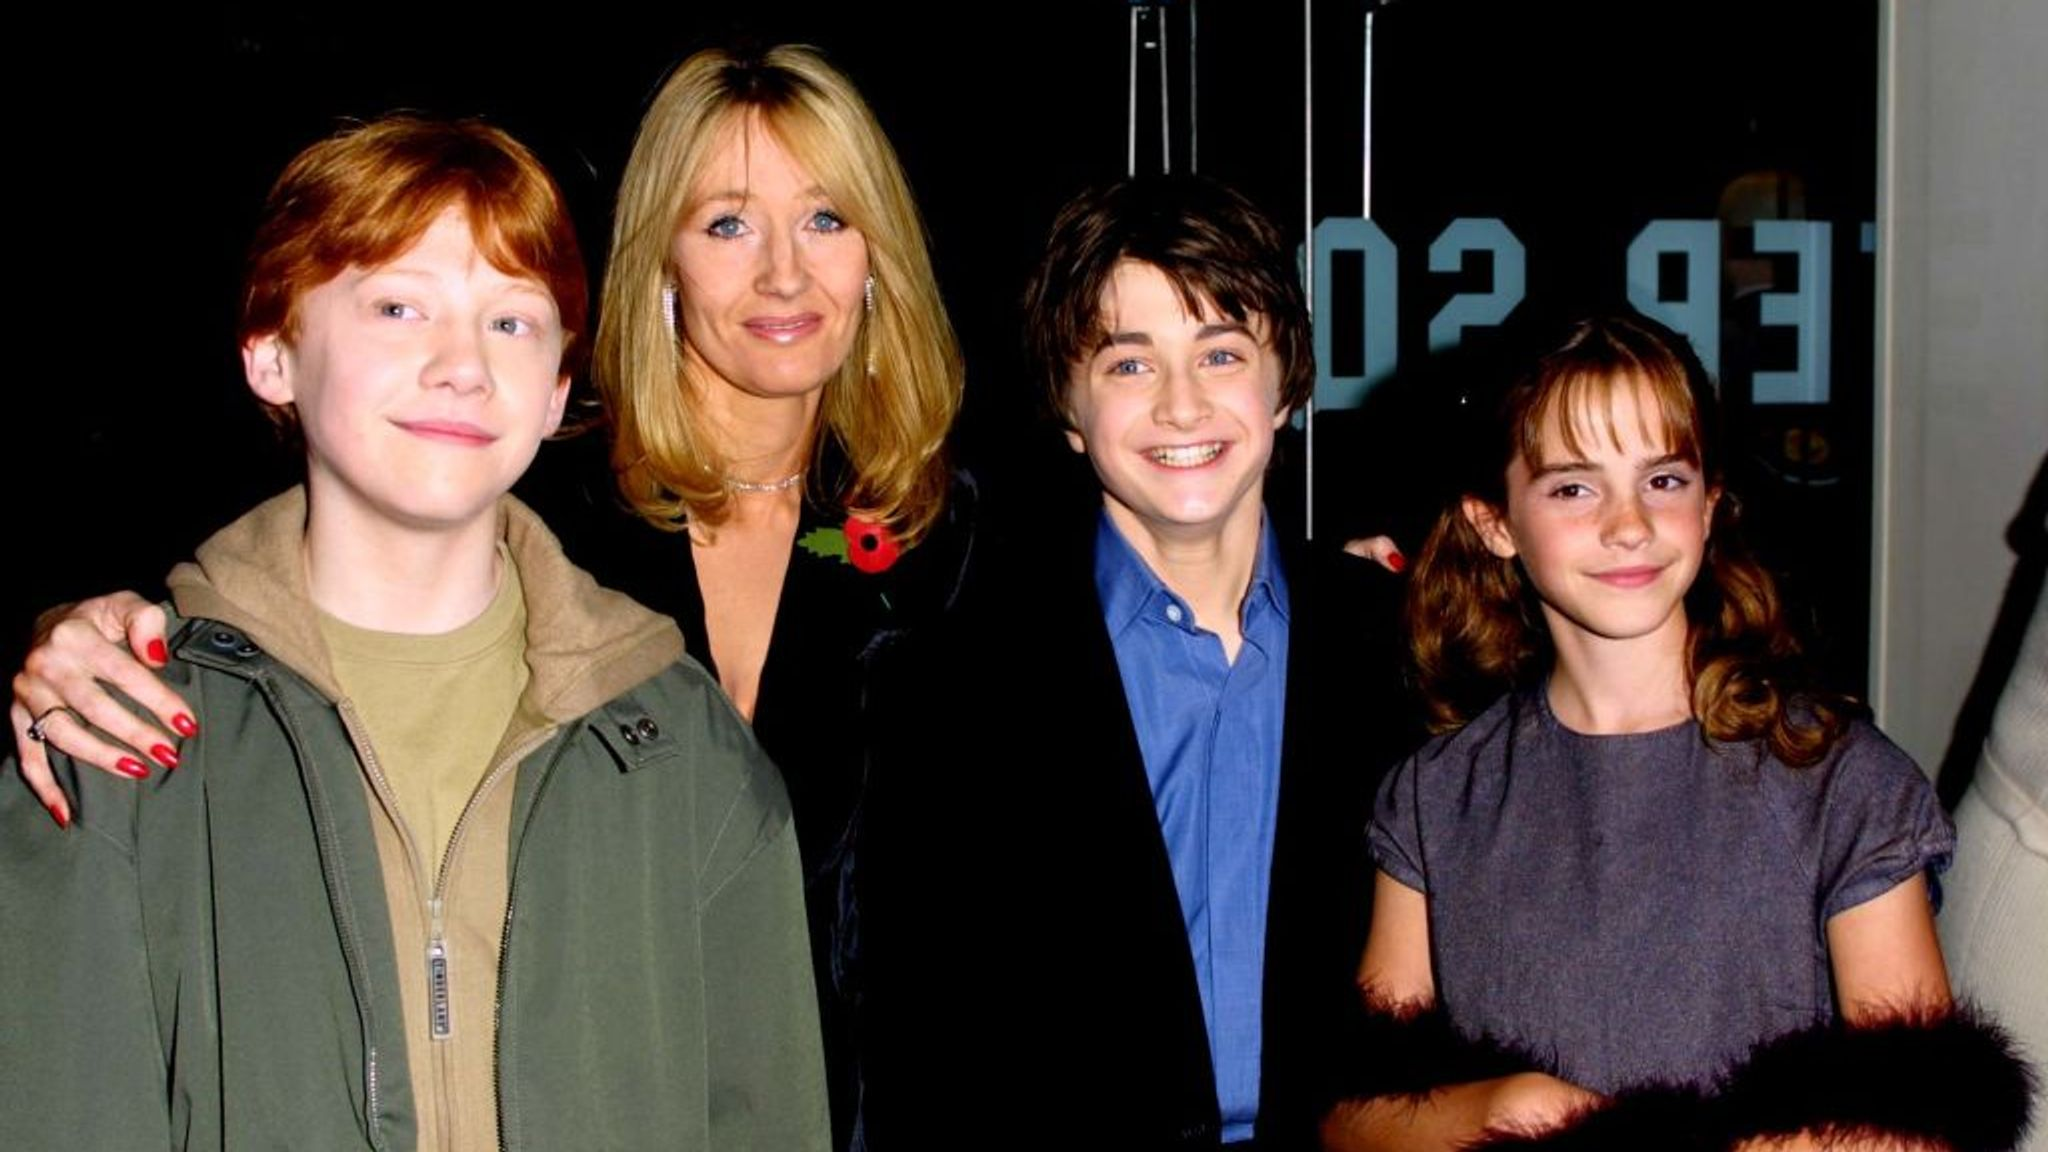 Harry Potter author JK Rowling with stars Rupert Grint, Daniel Radcliffe and Emma Watson